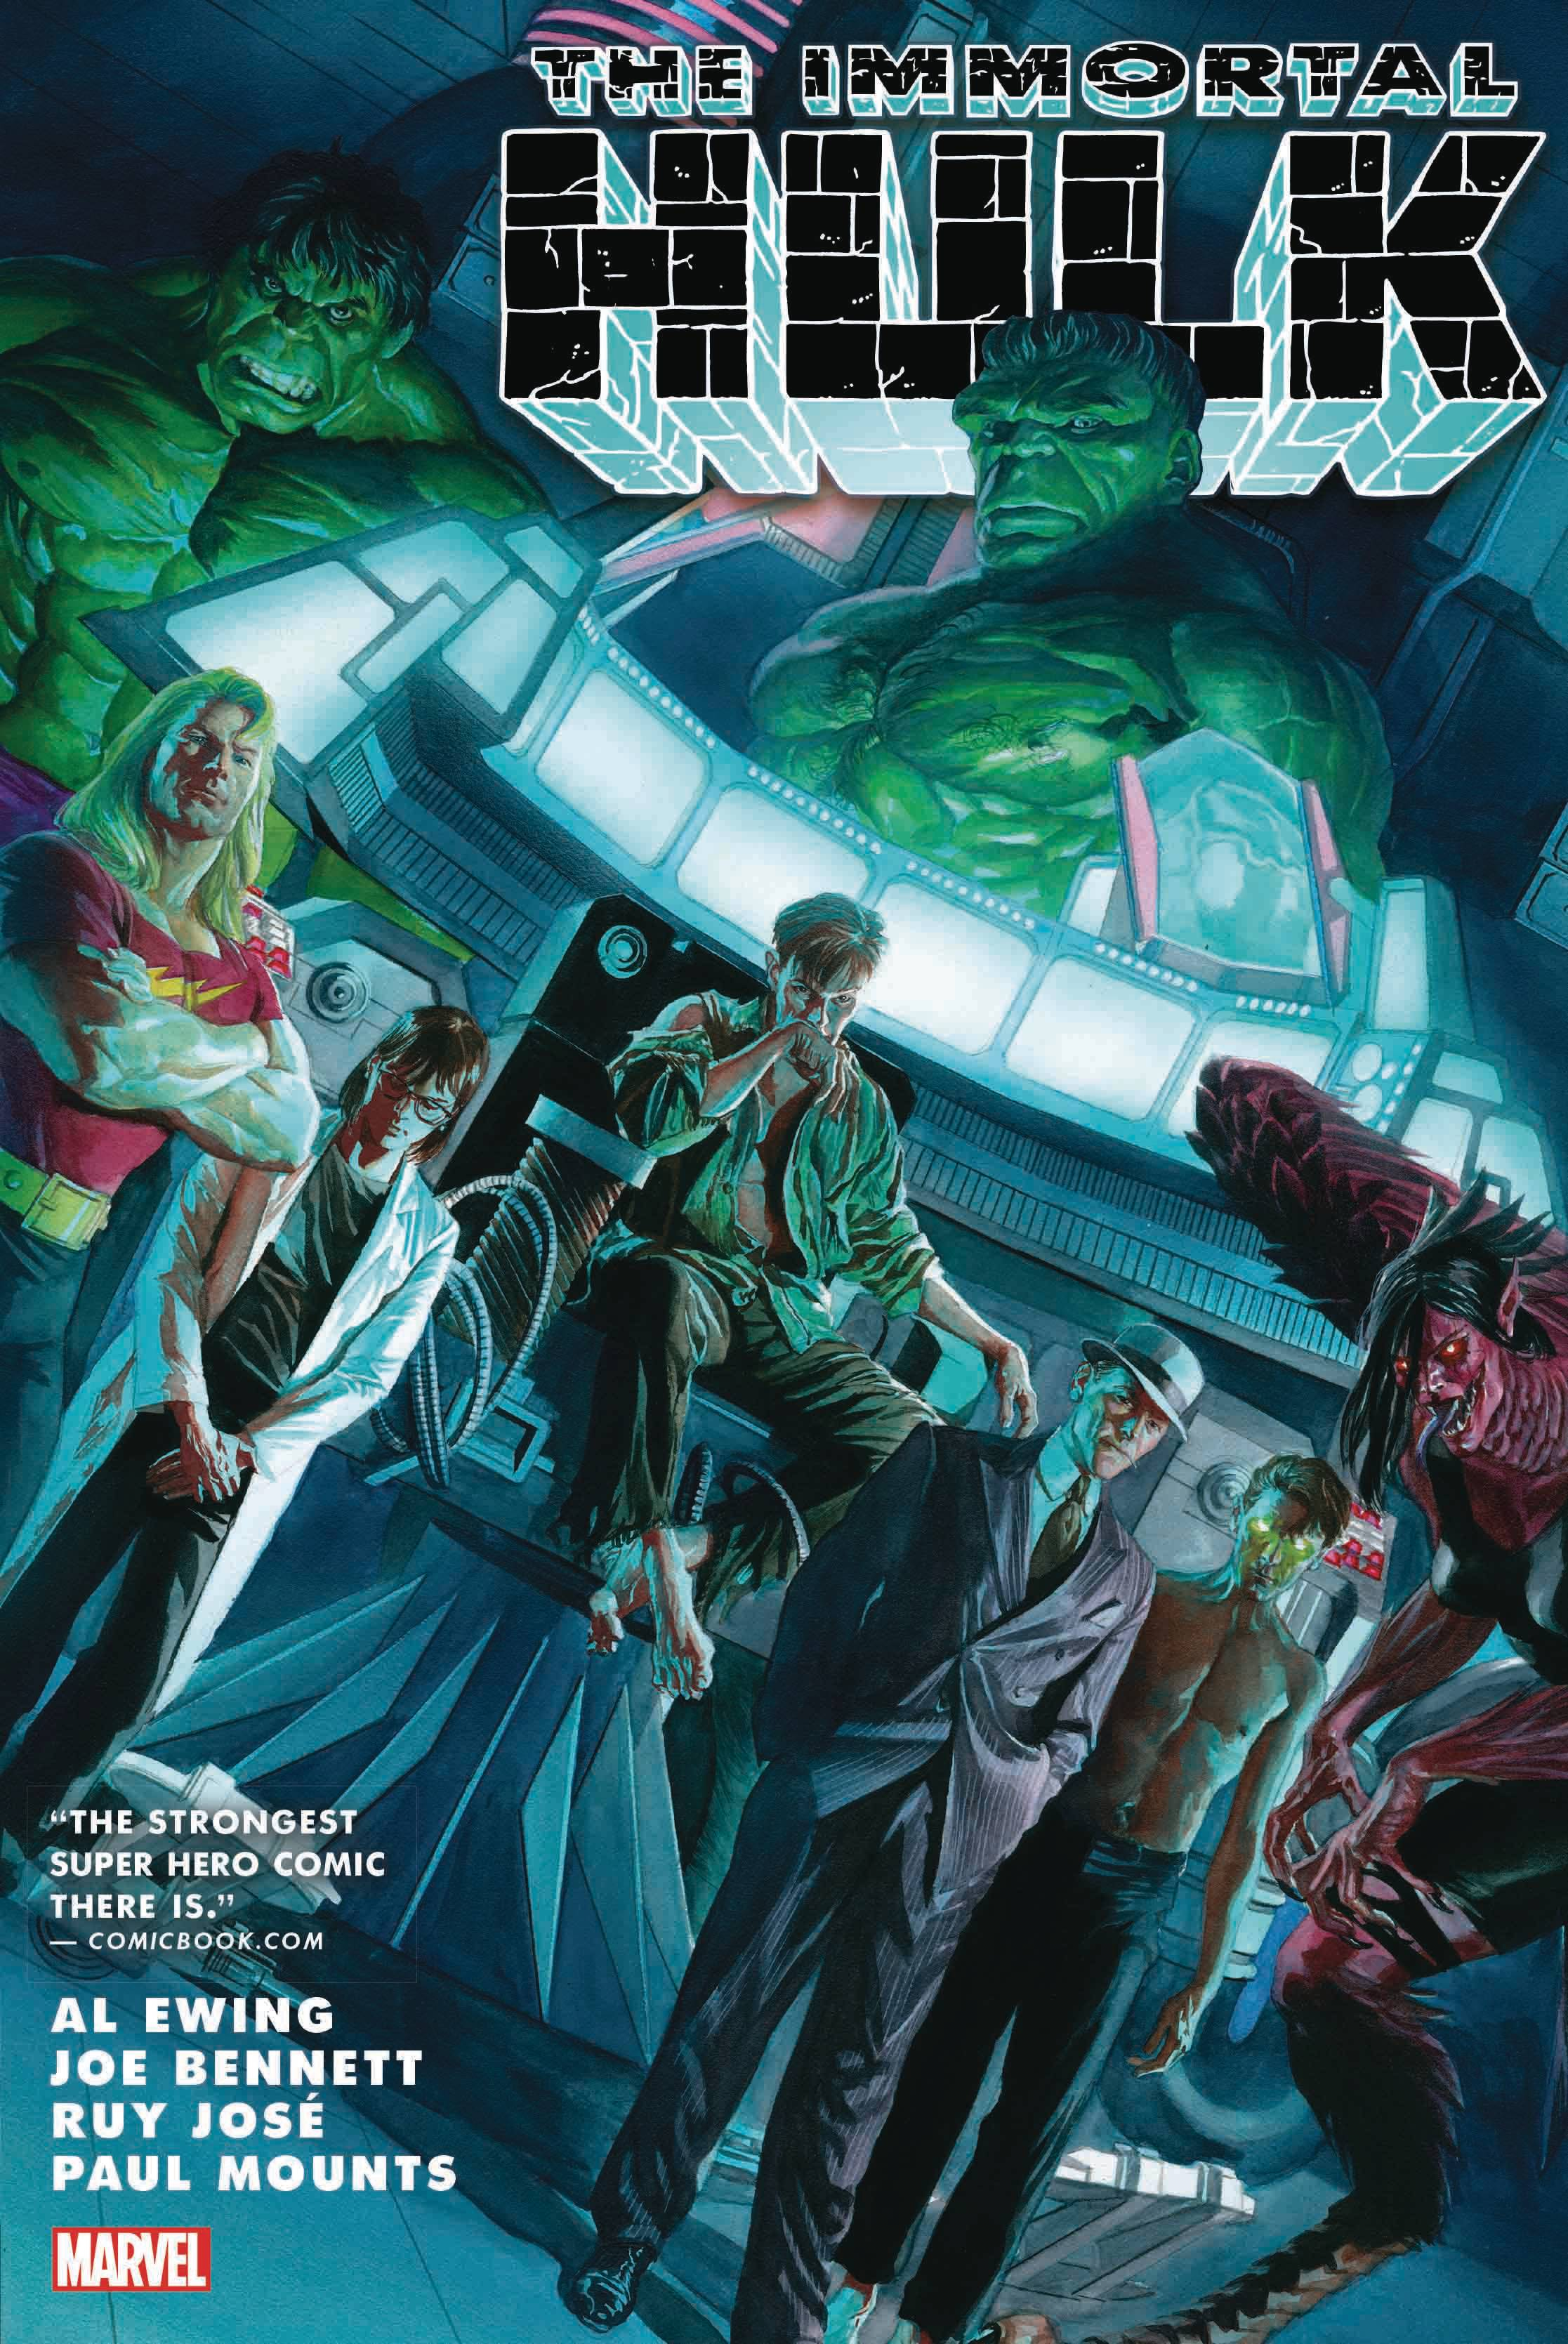 IMMORTAL HULK HC VOL 03